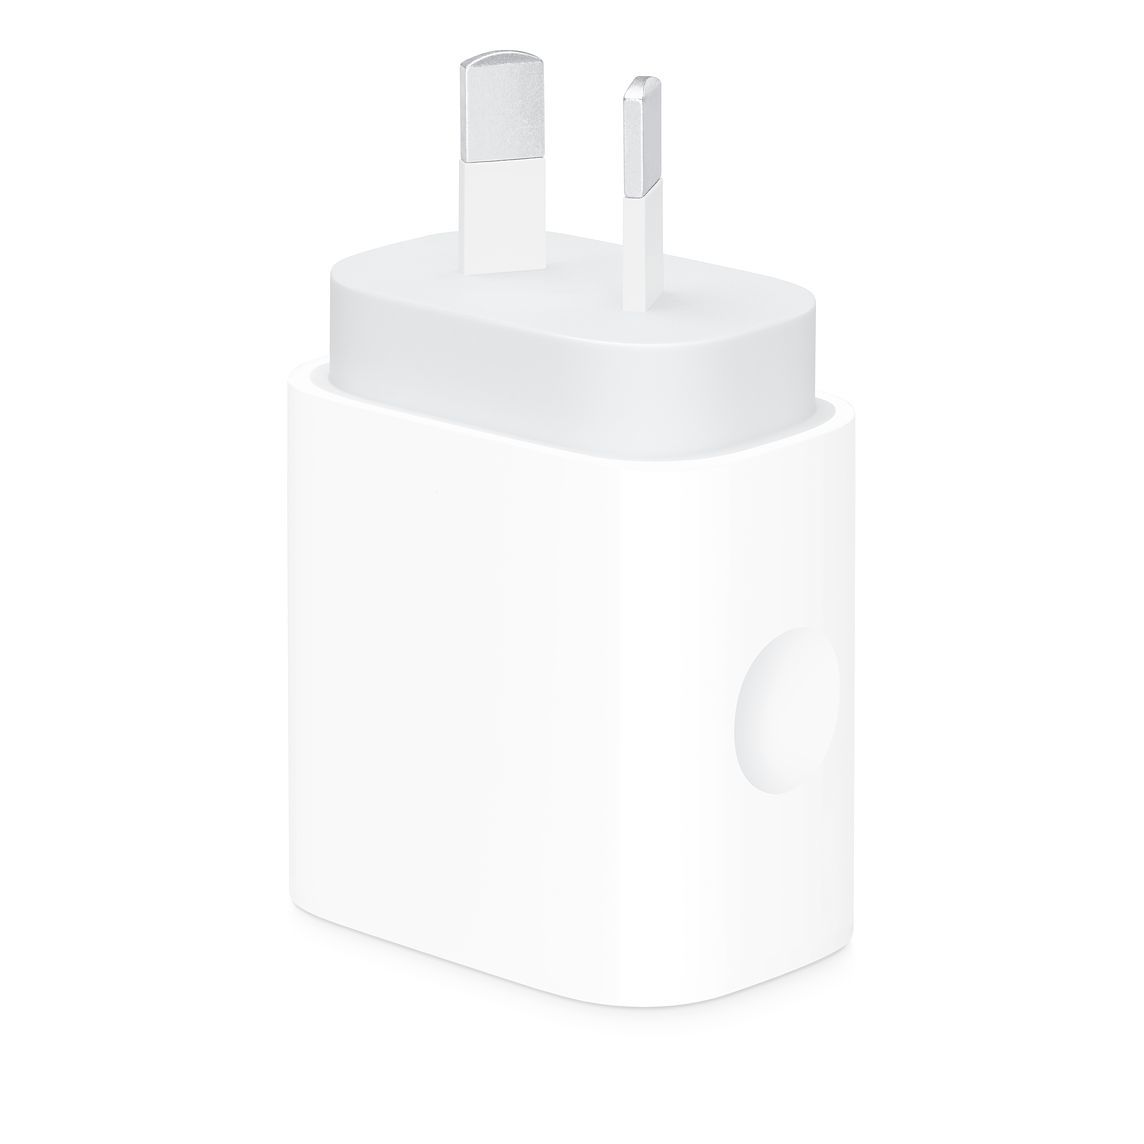 Apple widely expected to include 18 Watt charger with new ...